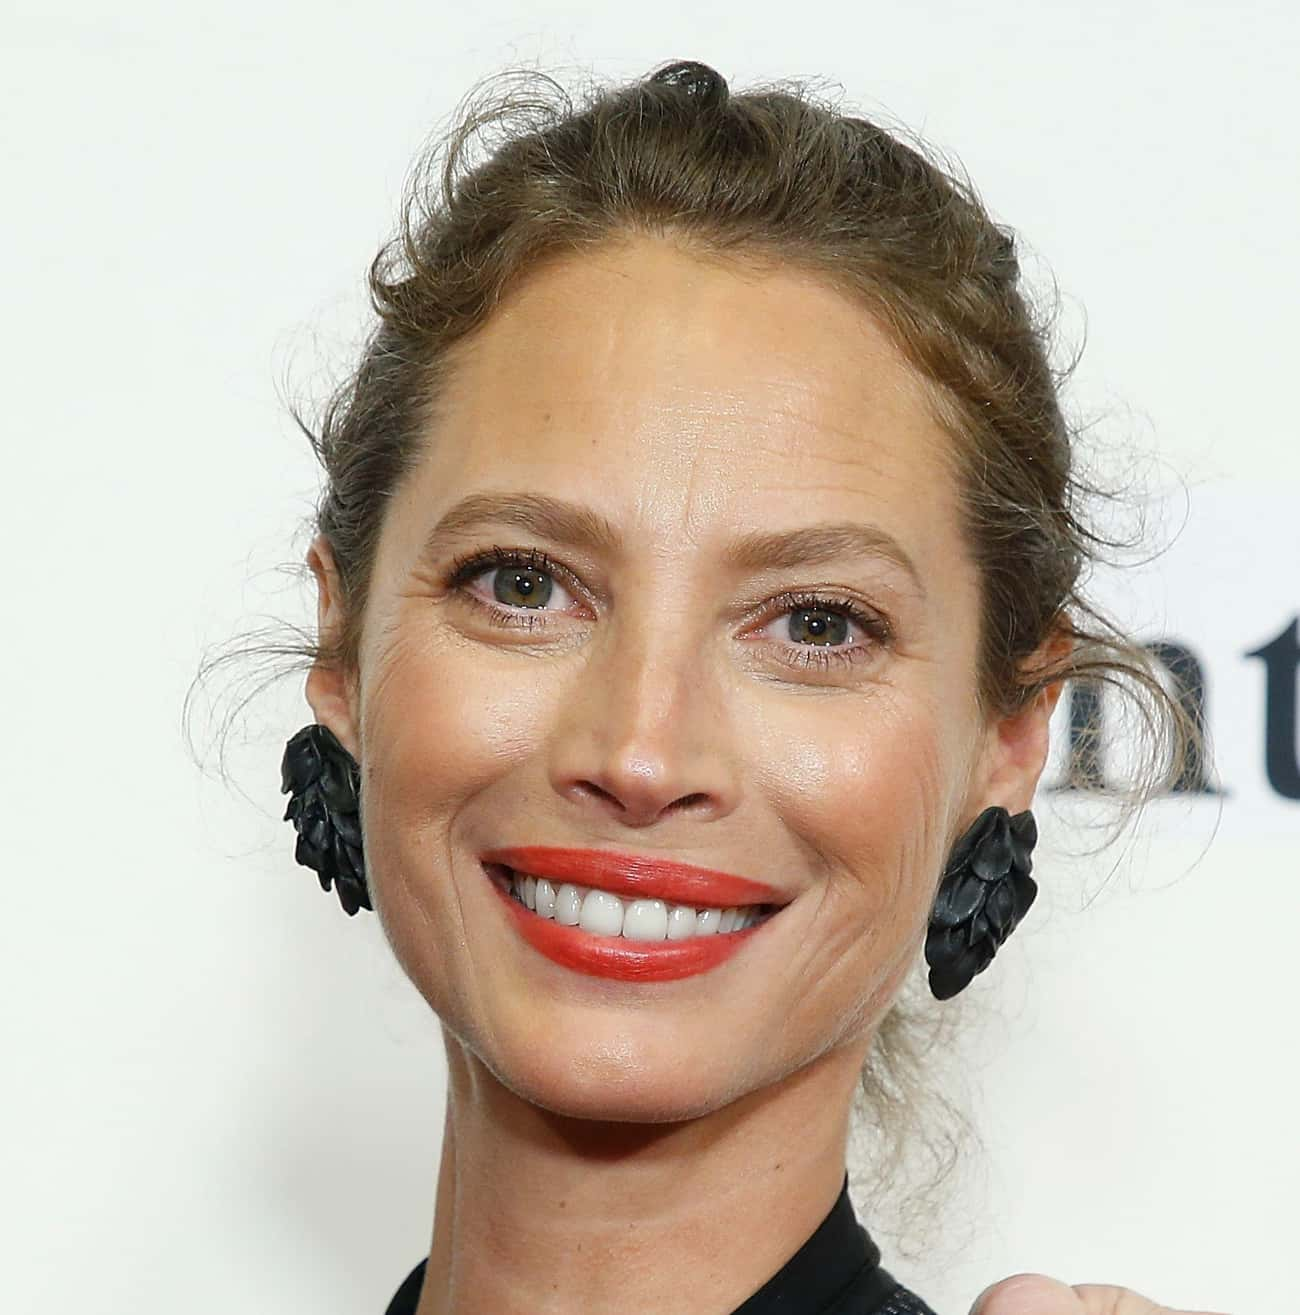 Christy Turlington Burns Has A is listed (or ranked) 1 on the list Celebrities With Surprising College Degrees